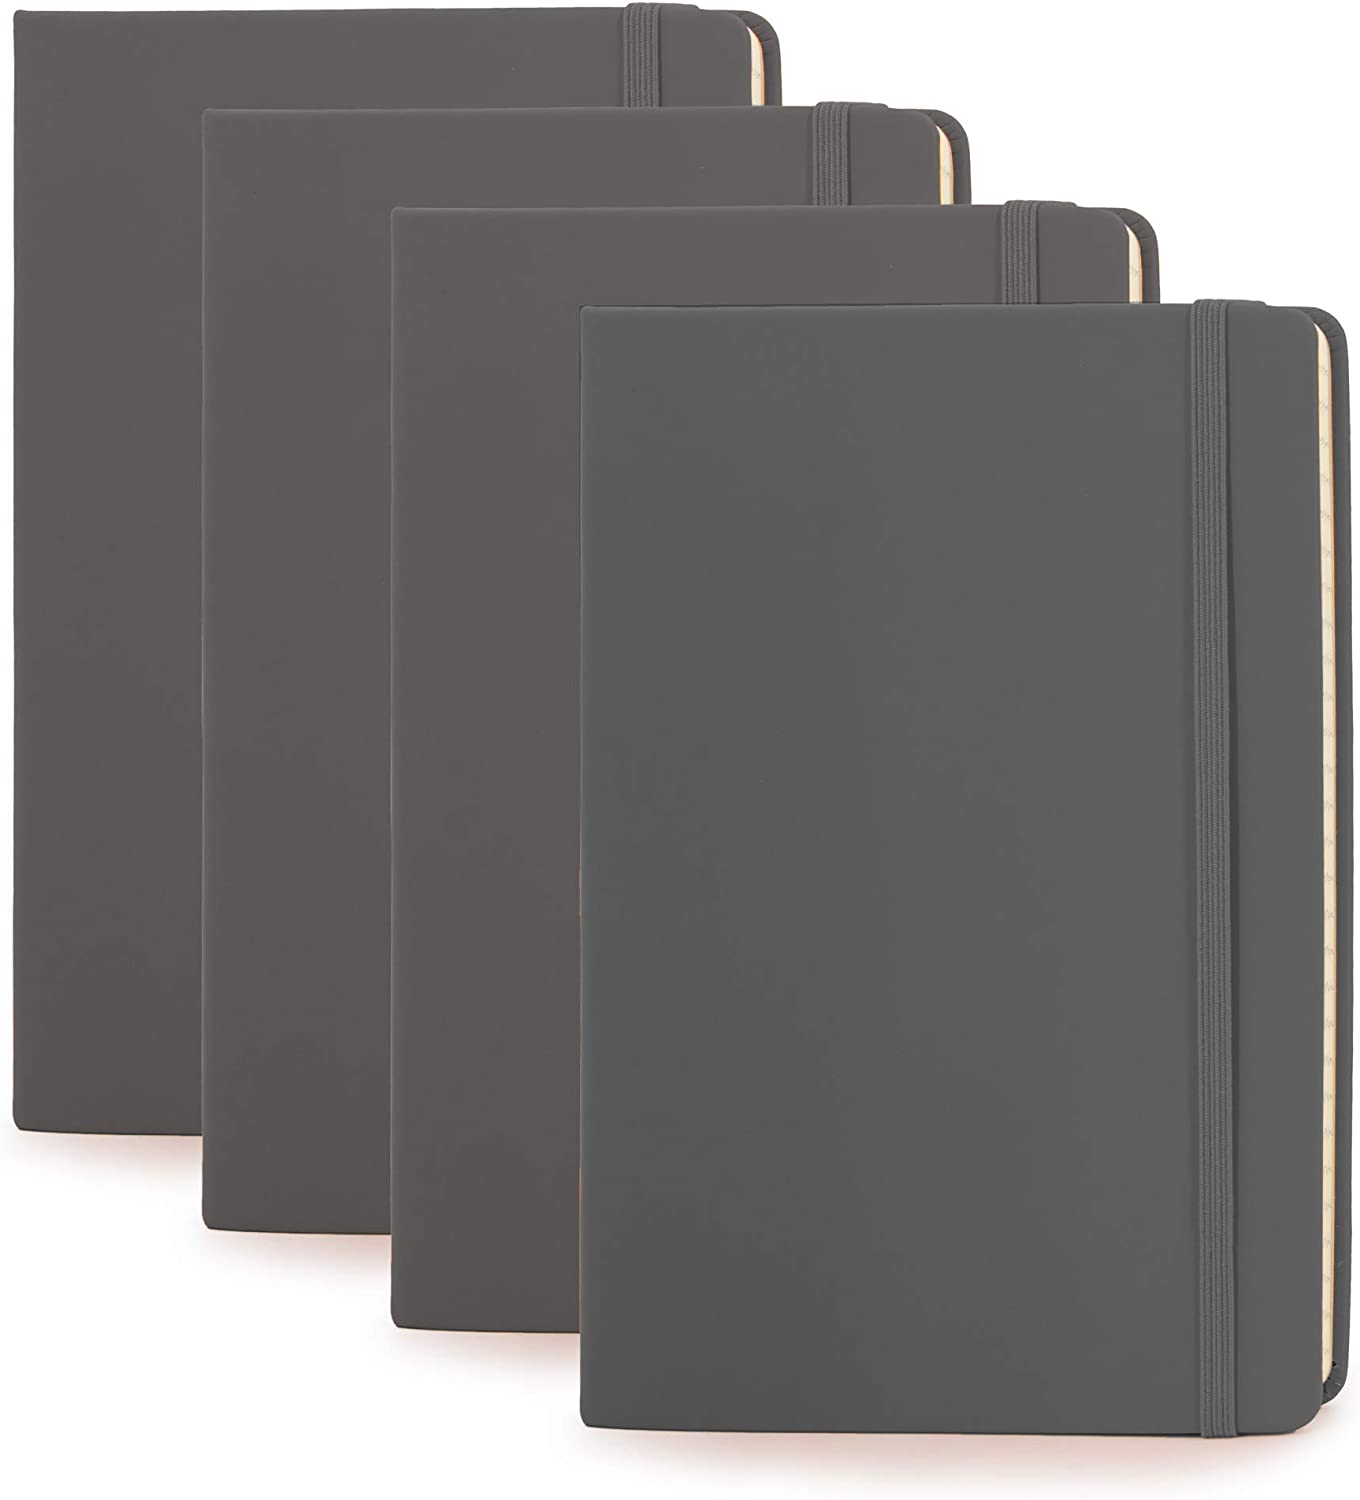 "Simply Genius (4 Pack) A5 Hardcover Leatherette Journals to Write in for Women, Faux Leather Journal for Men, Writing Journal Notebook Lined, 192pg Ruled, 5.7"" x 8.4"""